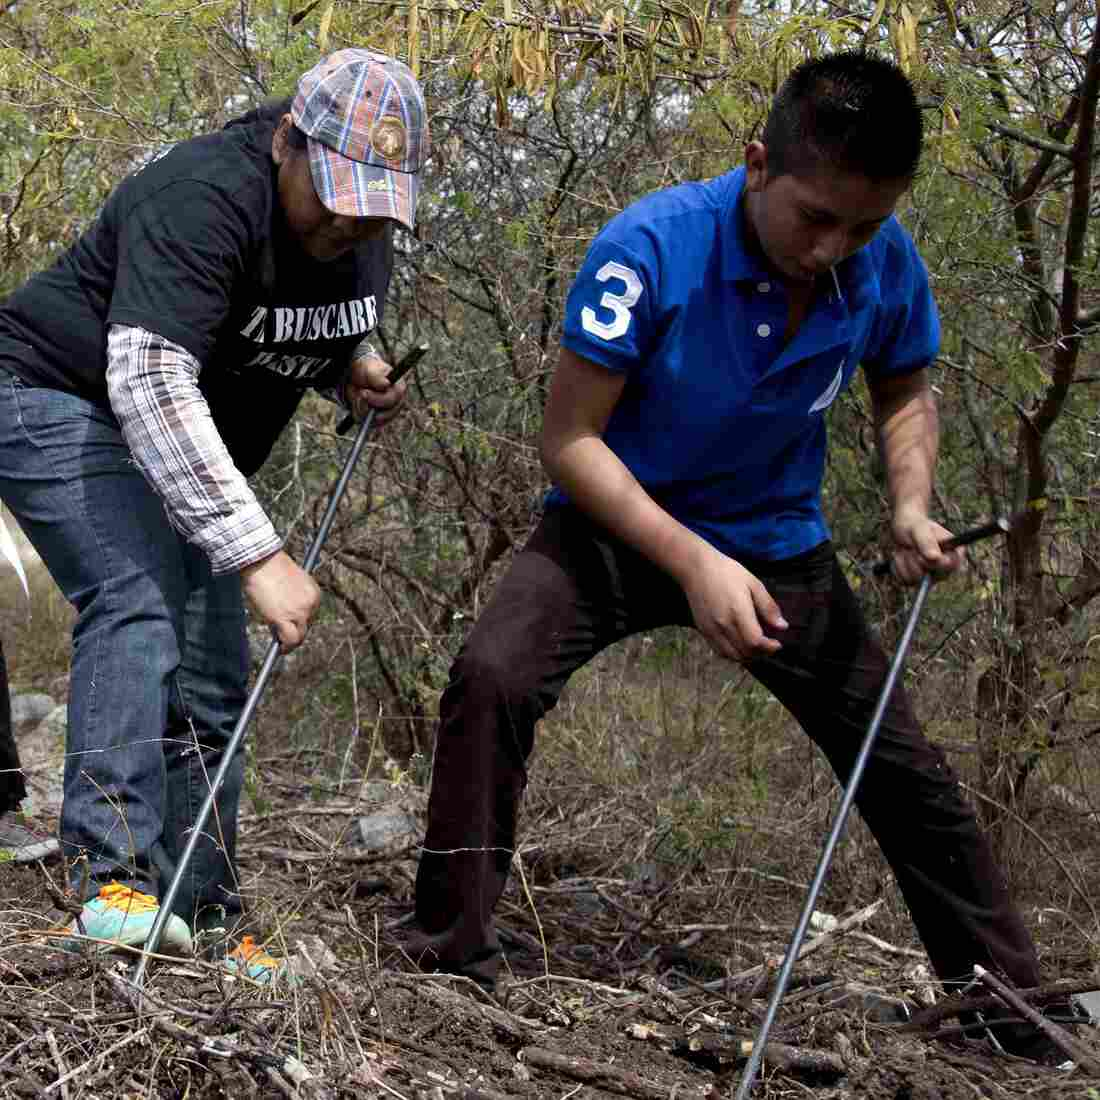 Search For Missing Students In Mexico Turns Up Graves Of Others